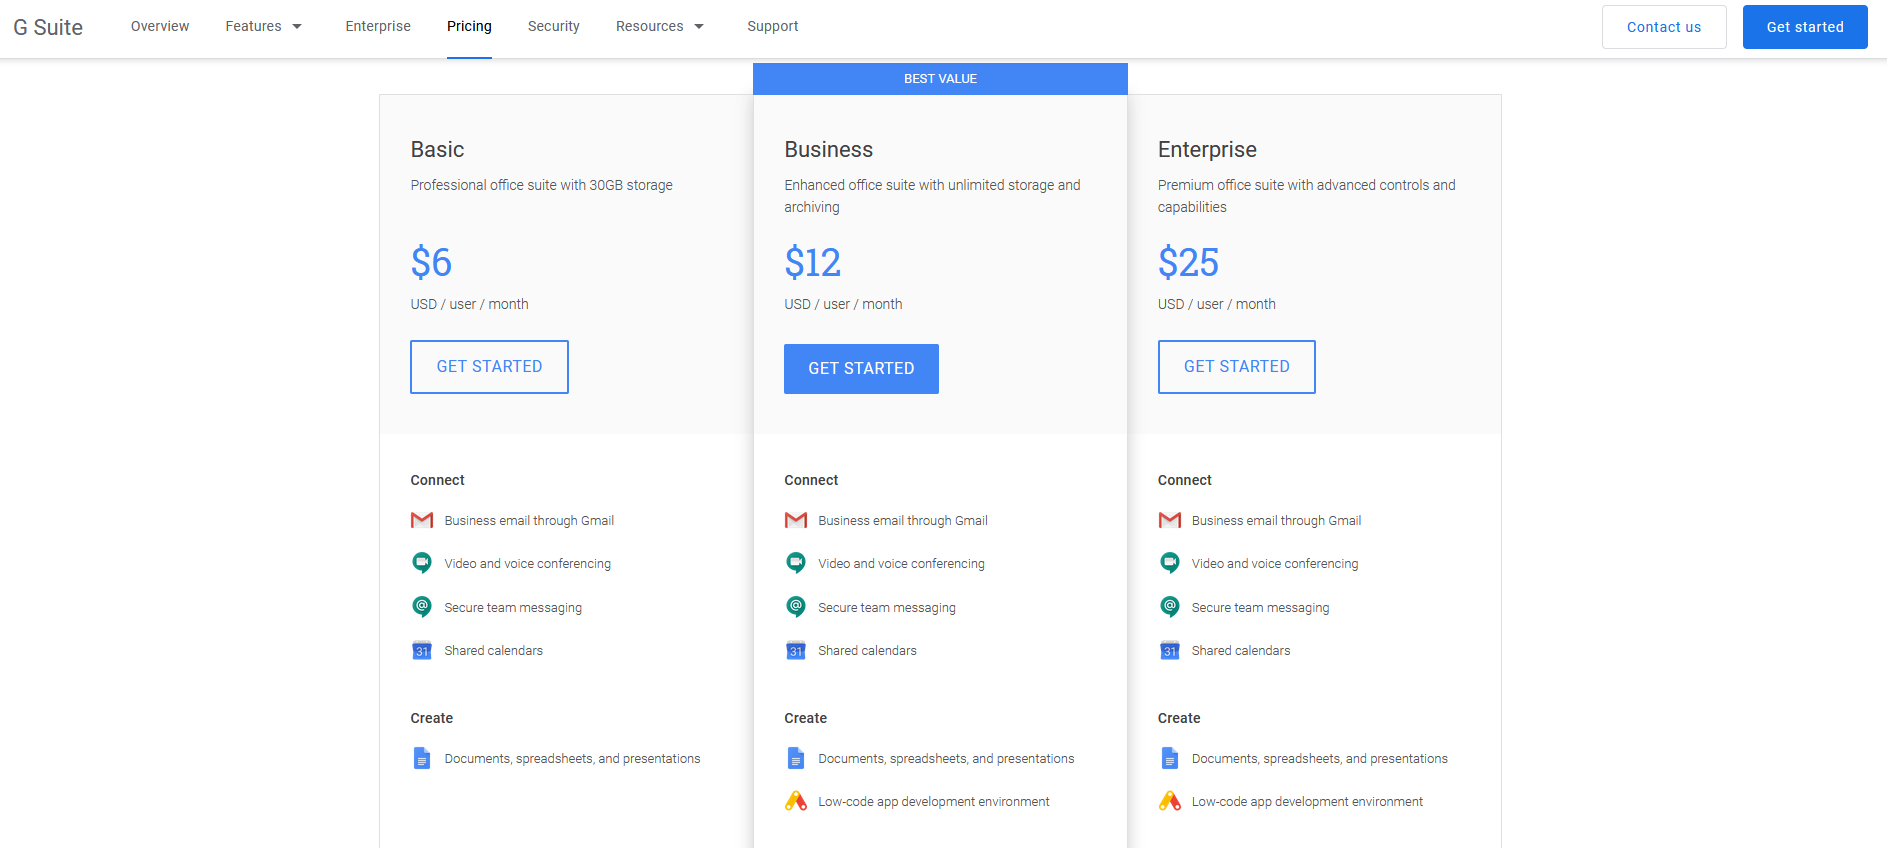 The pricing section of G Suite.